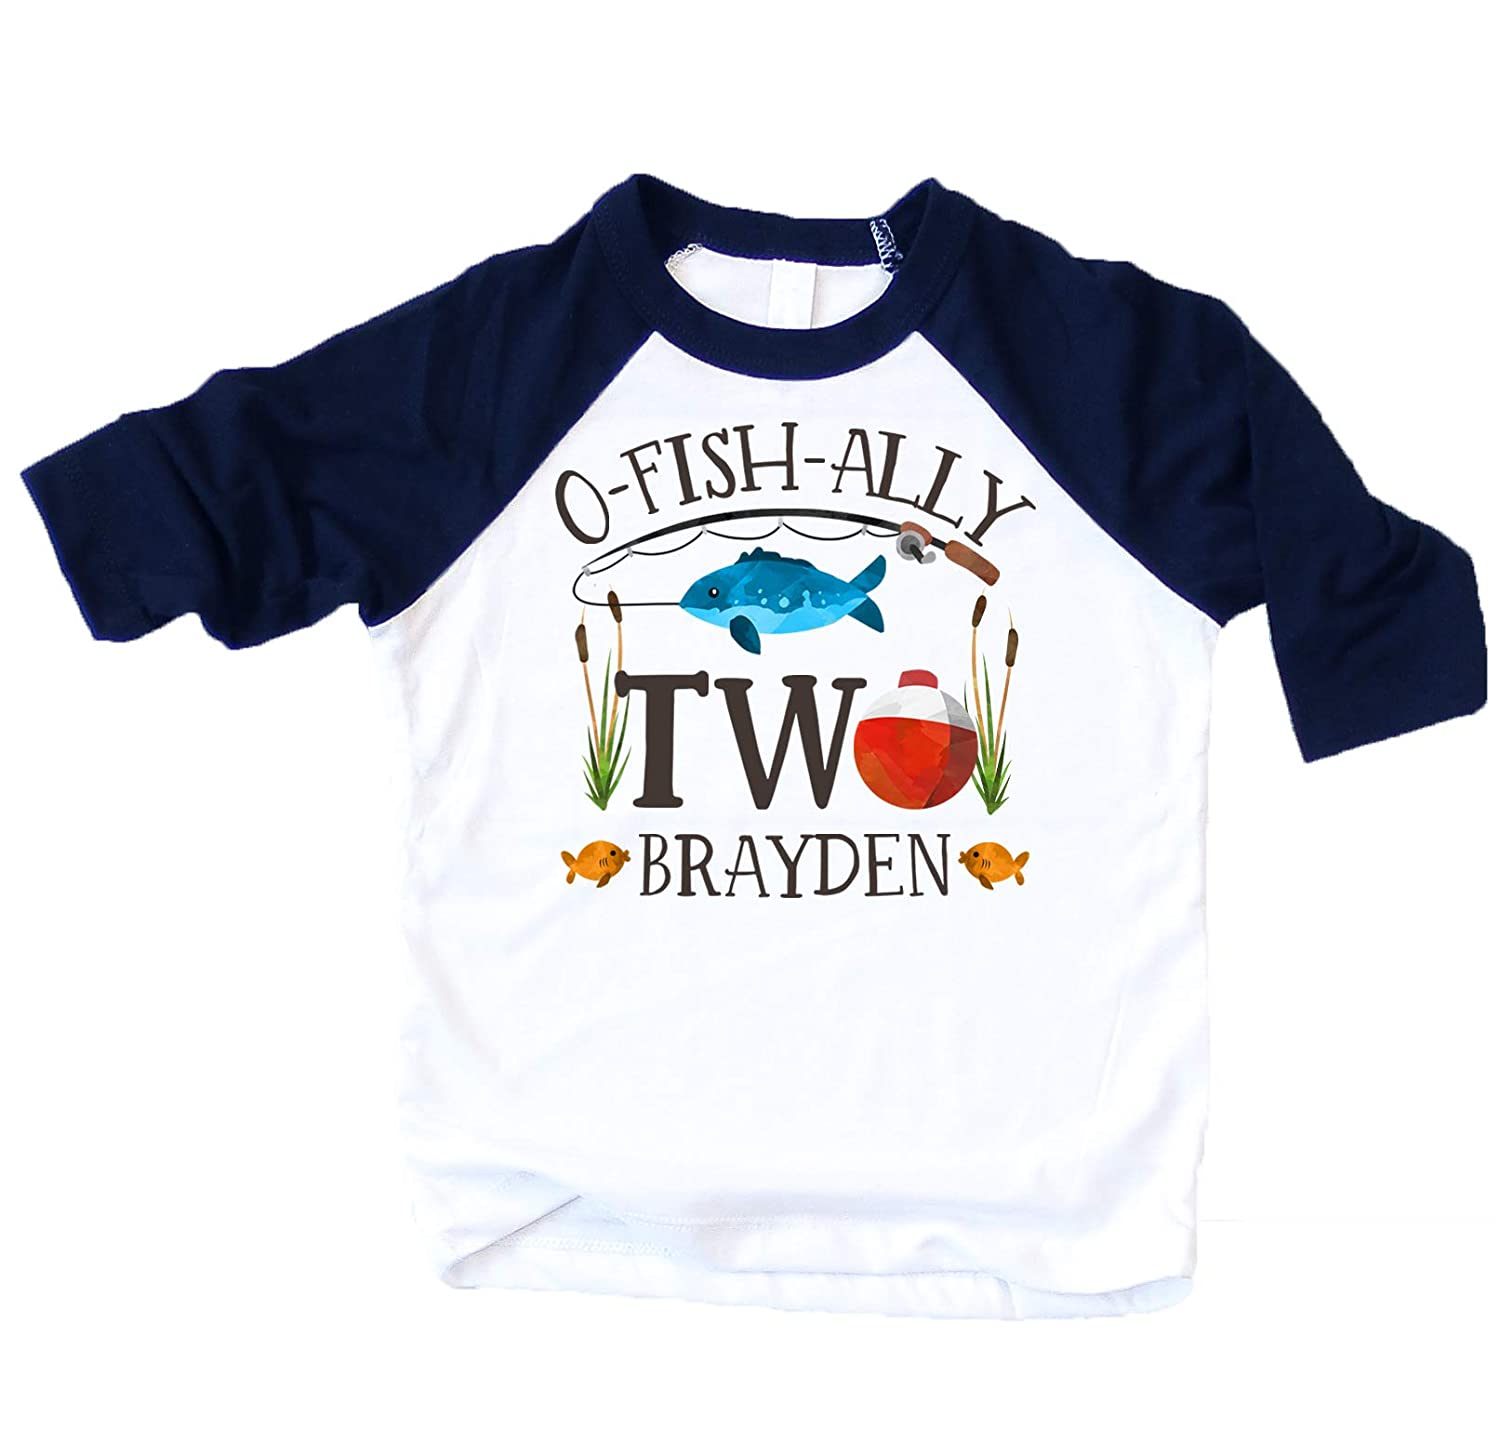 Amazon Personalized O Fish Ally Two Boys 2nd Birthday Shirt Fishing Second Boy Outfit Clothing